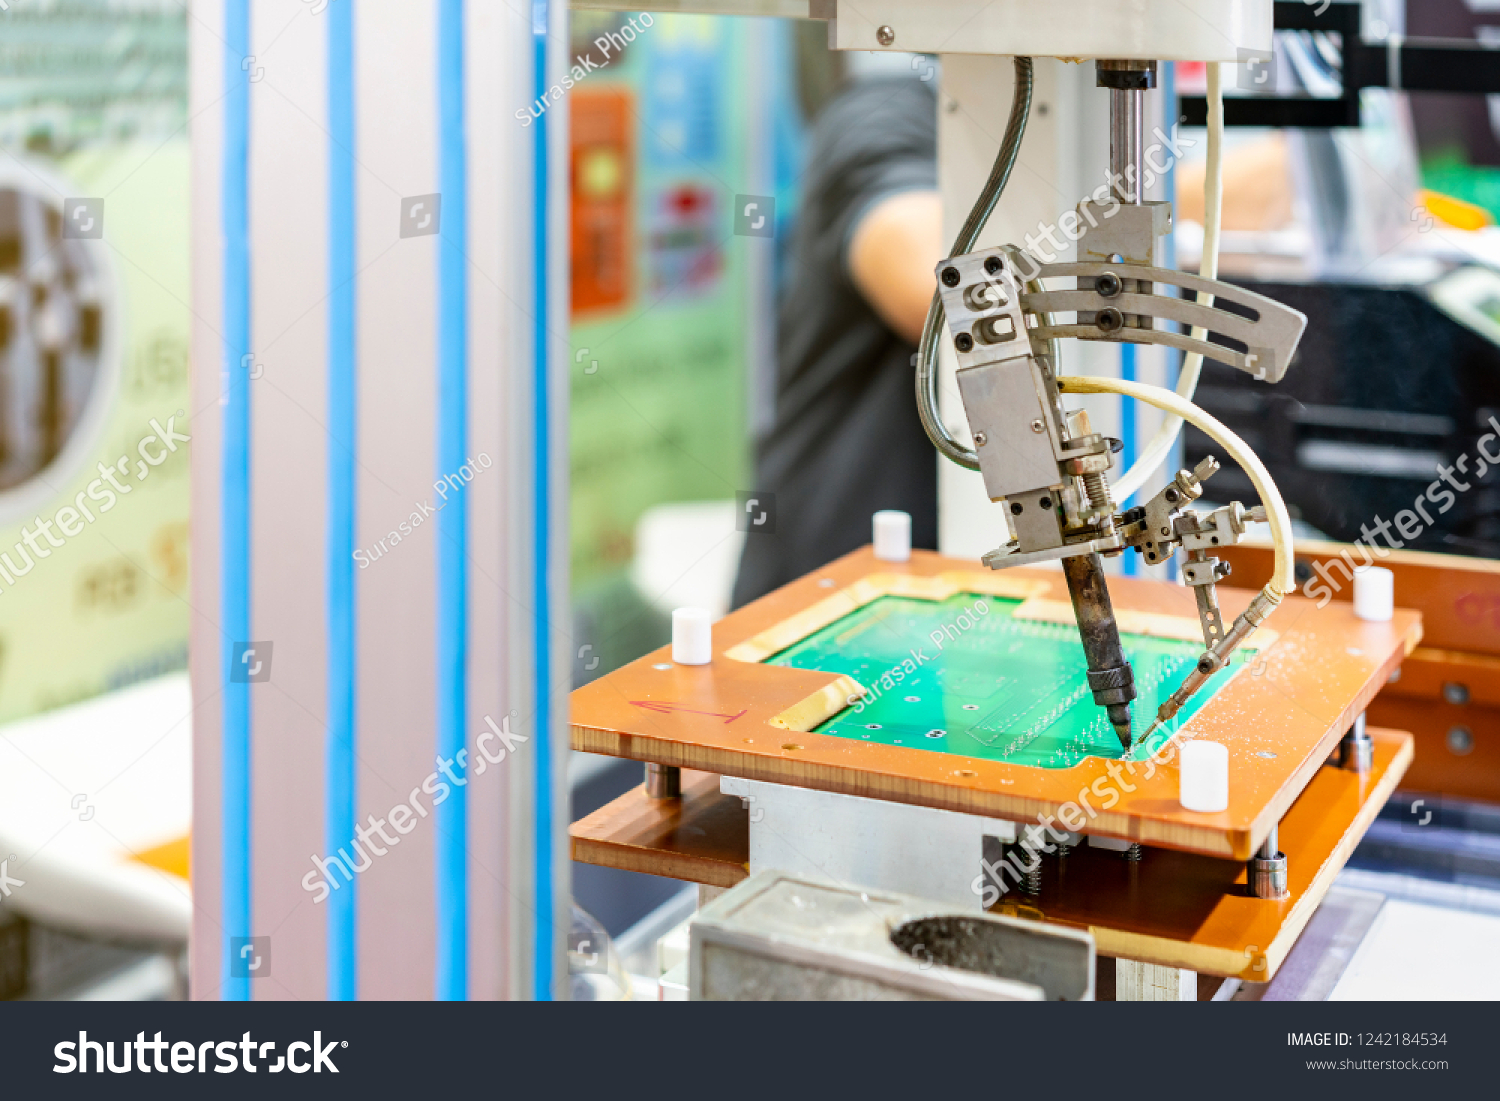 High Technology Modern Automatic Robot Pcb Stock Photo Edit Now Printed Circuit Board Assembly And For Print Machine During